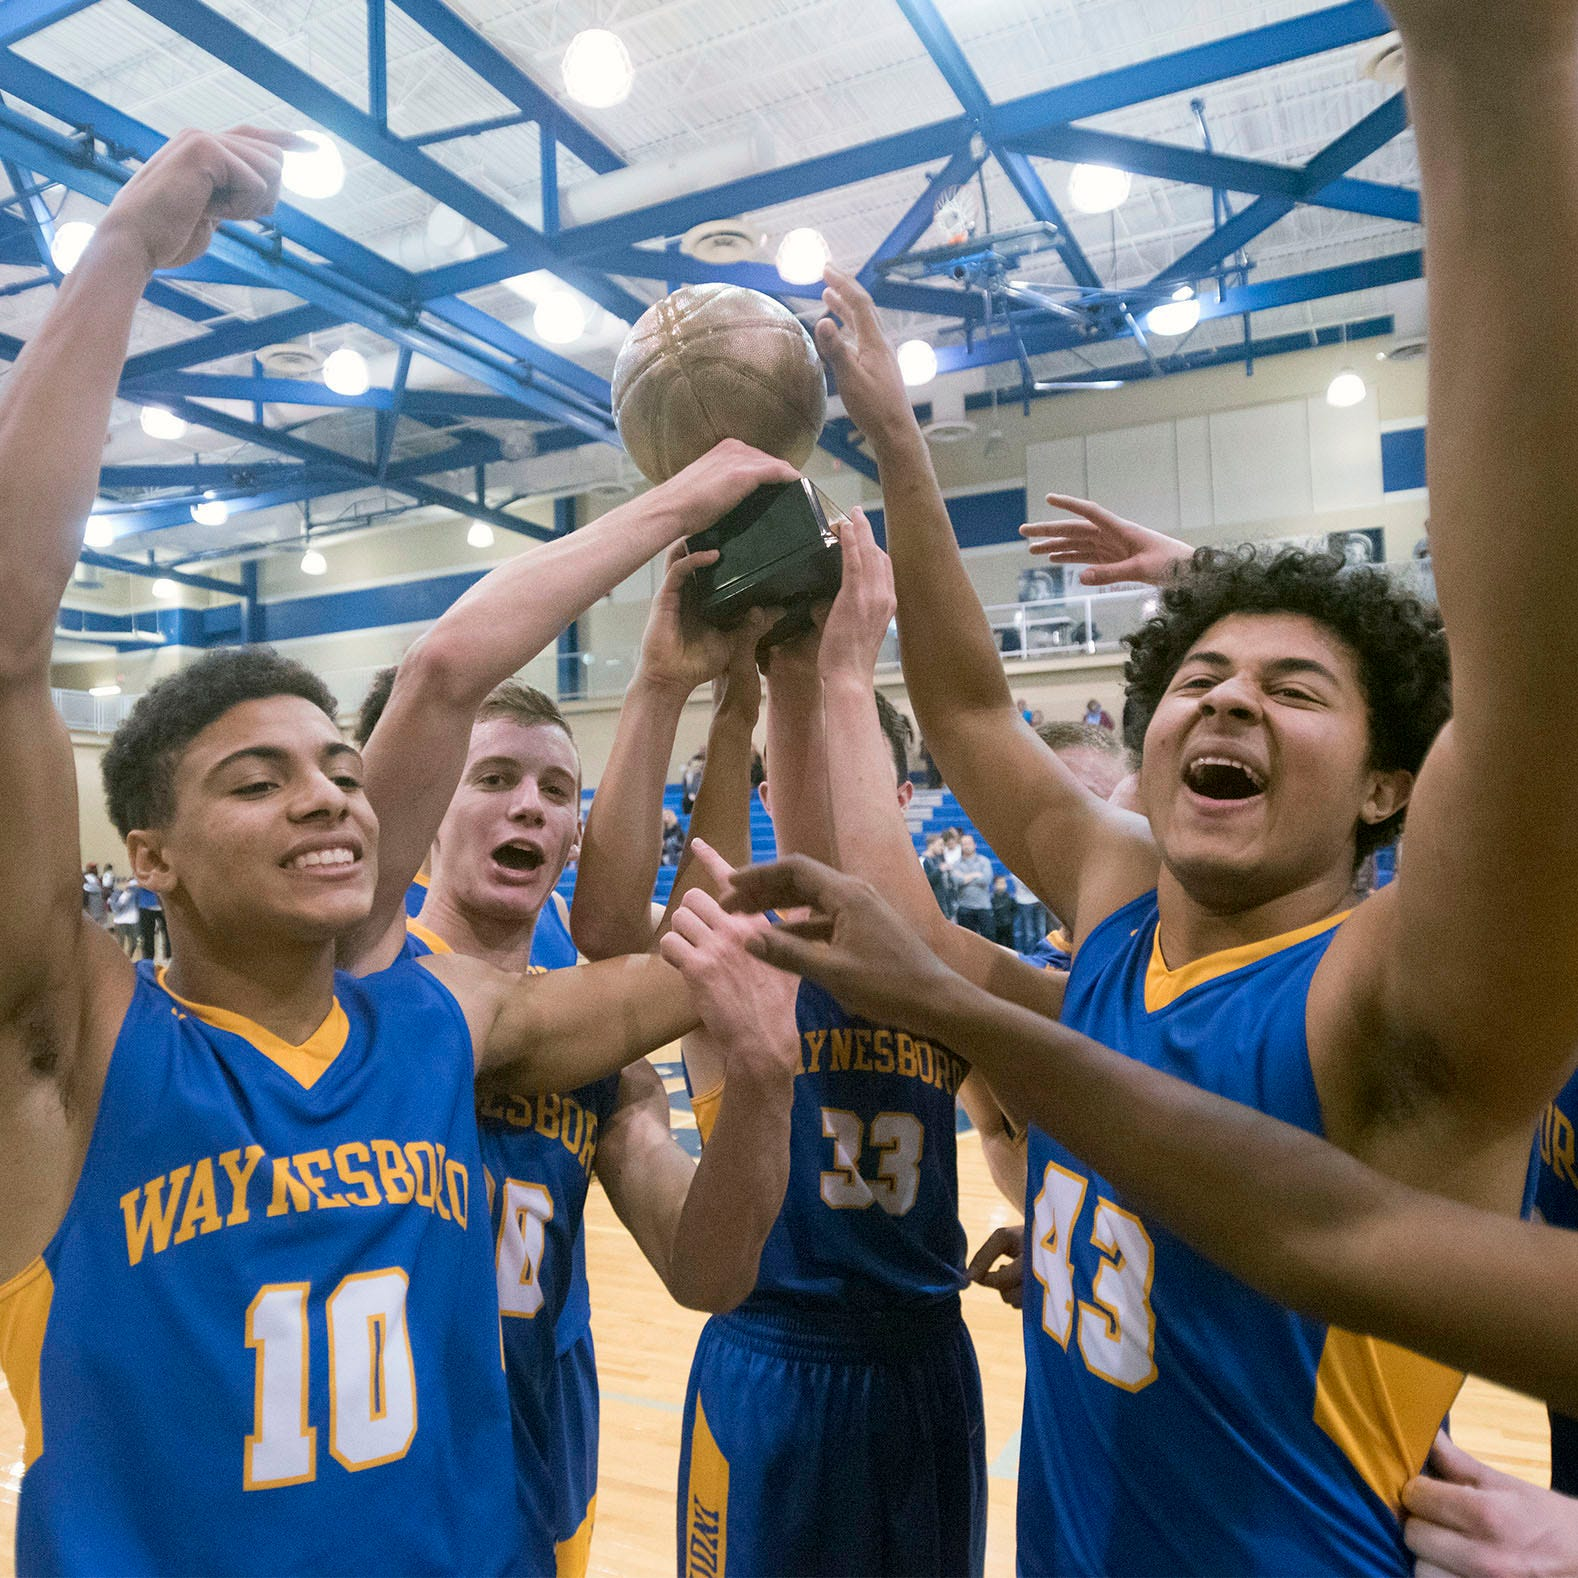 Waynesboro, Greencastle-Antrim take home Tip-Off titles